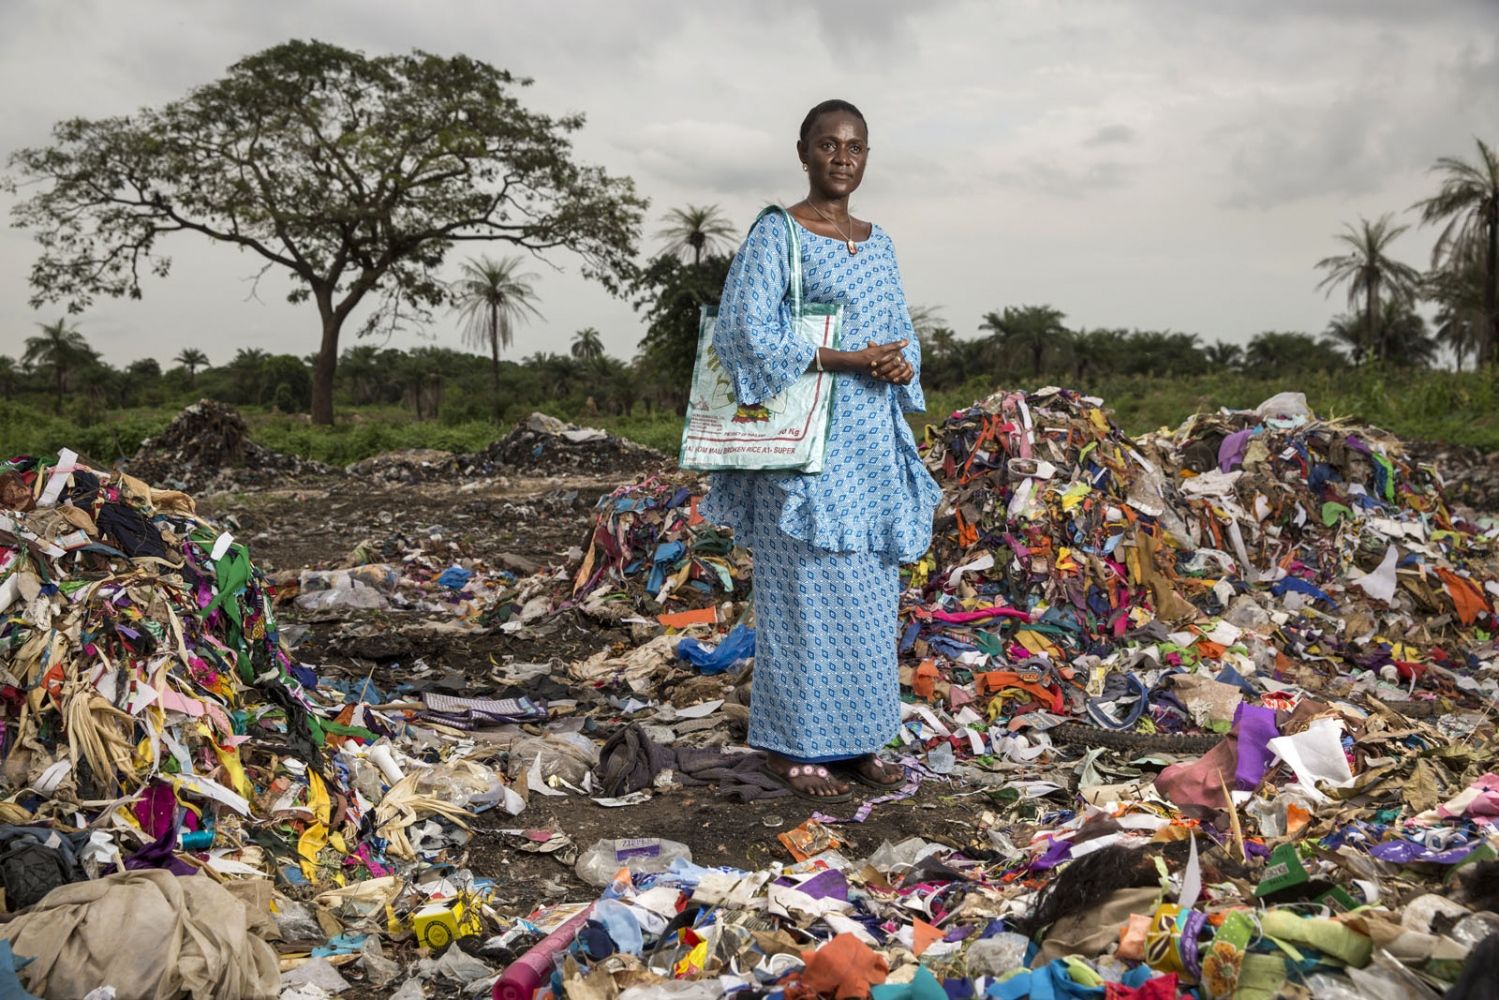 Isatou Ceesay stands at a waste dump in the town of Birkama. Mrs Ceesay founded the Women's Initiative Gambia in 1997. The organisation works with communities across the tiny west African state to address not only the environmental impact of unregulated waste disposal, particularly plastic, but also the empowerment of women in the make dominated society. Over one hundred women are now involved in Isatou's project.  Birkama - The Gambia